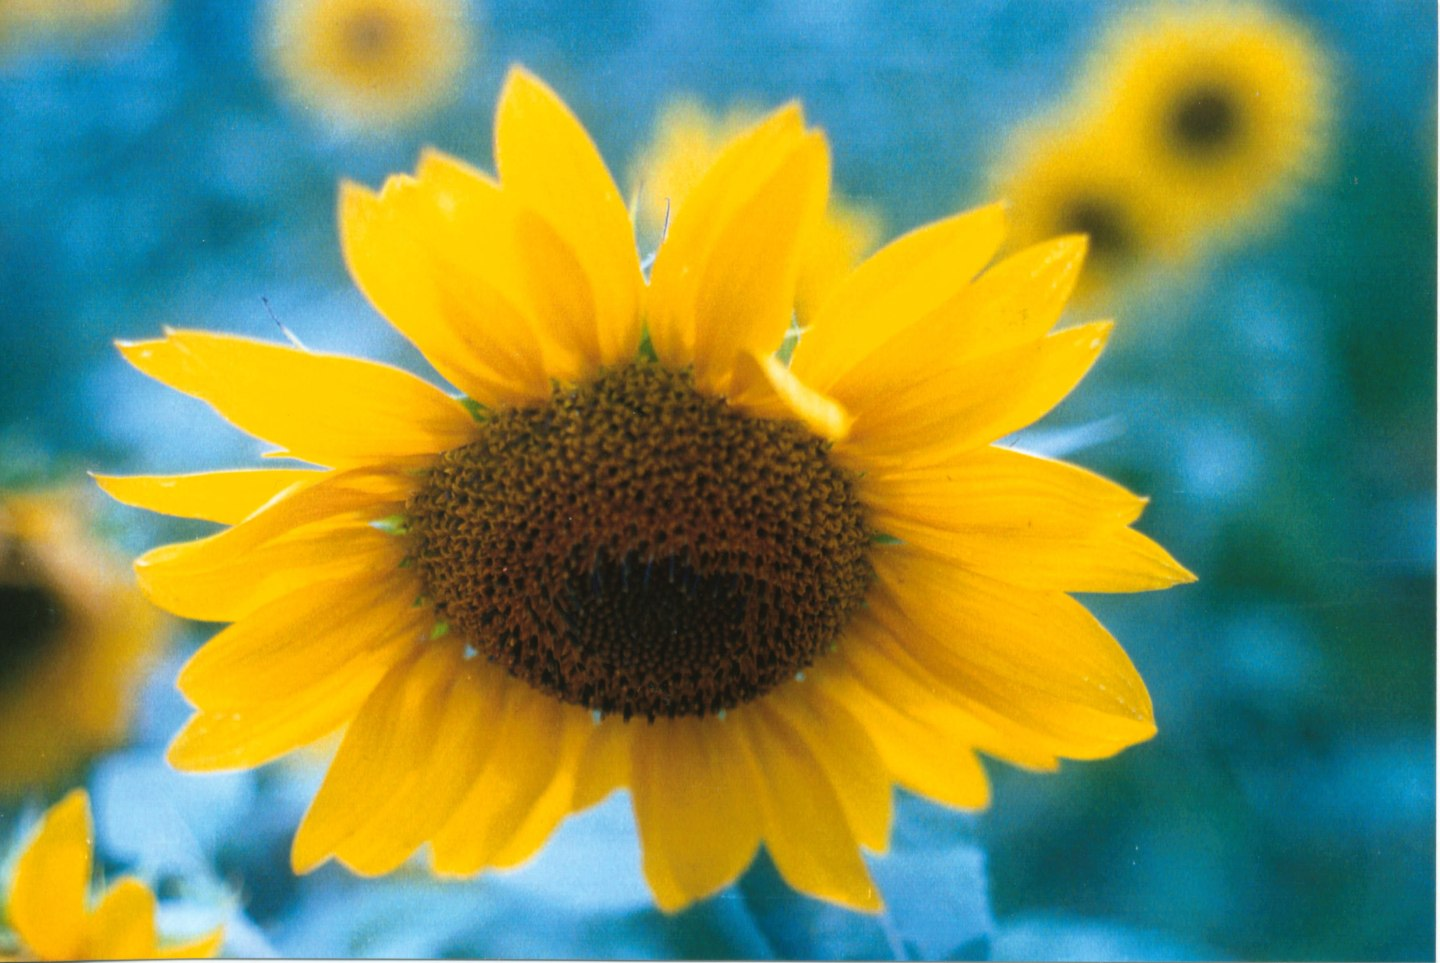 sunflowers film